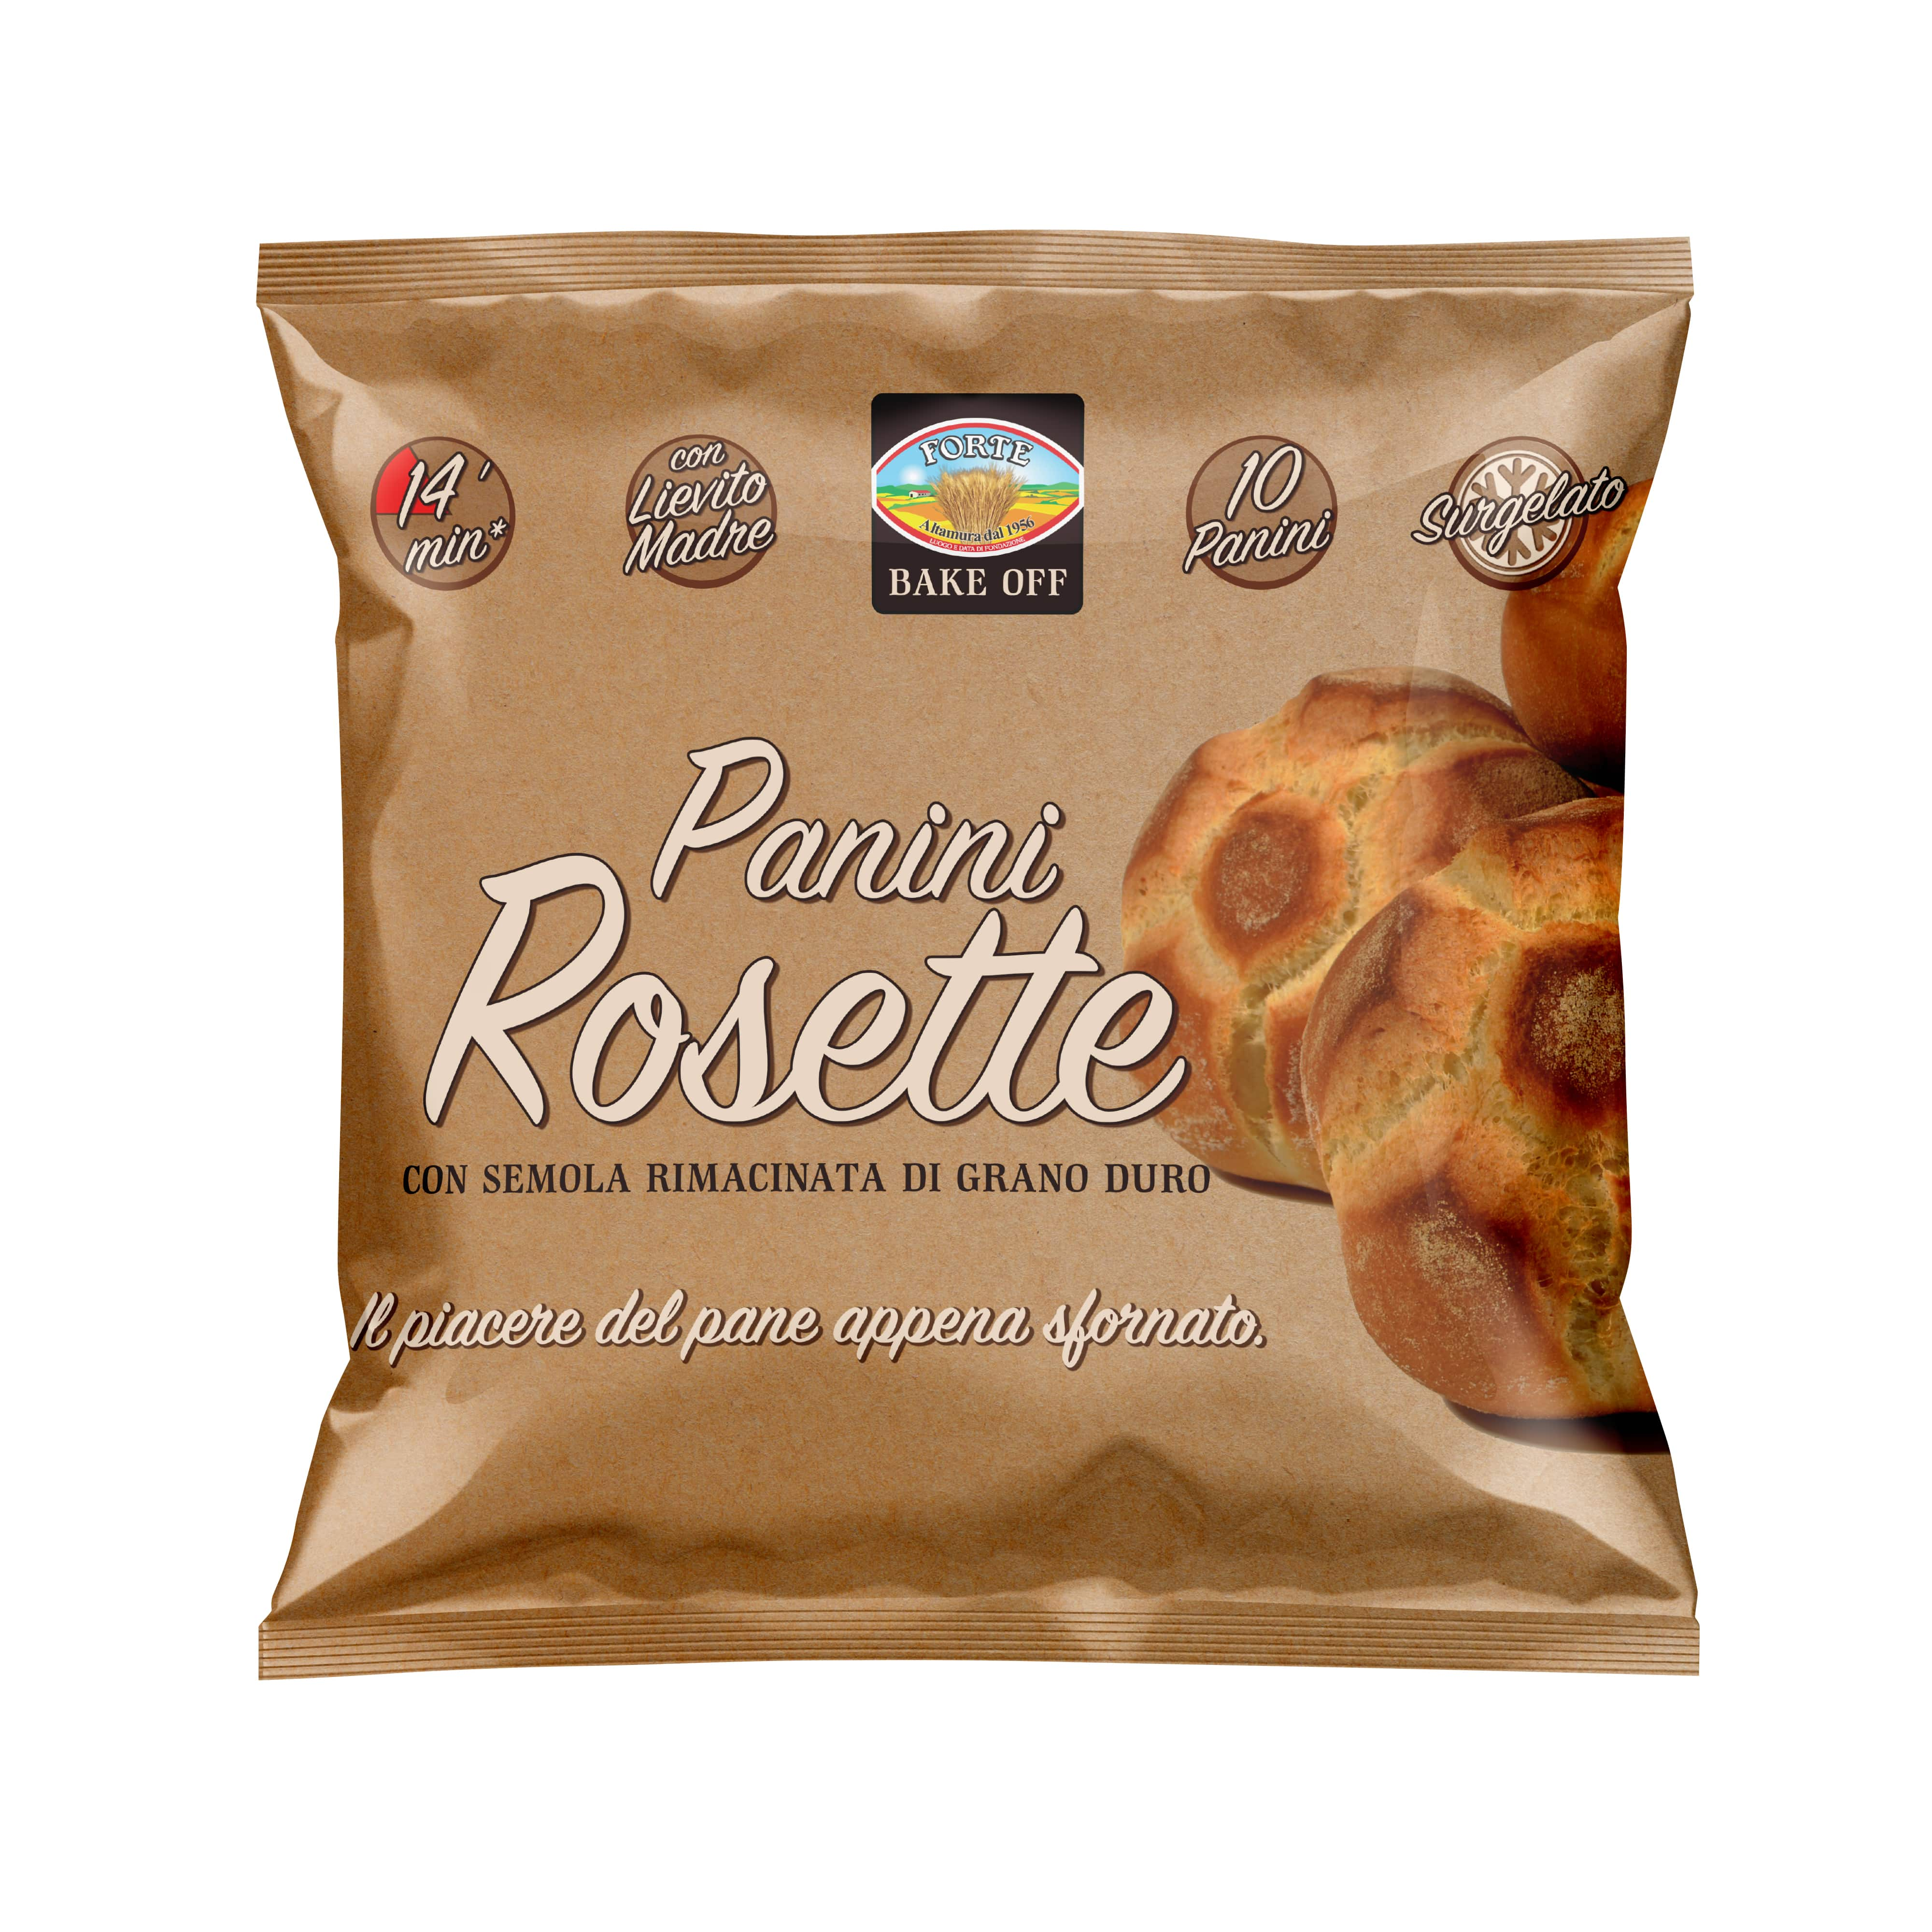 Bake-At-Home Rosetta bread rolls with durum wheat semolina 50gX10